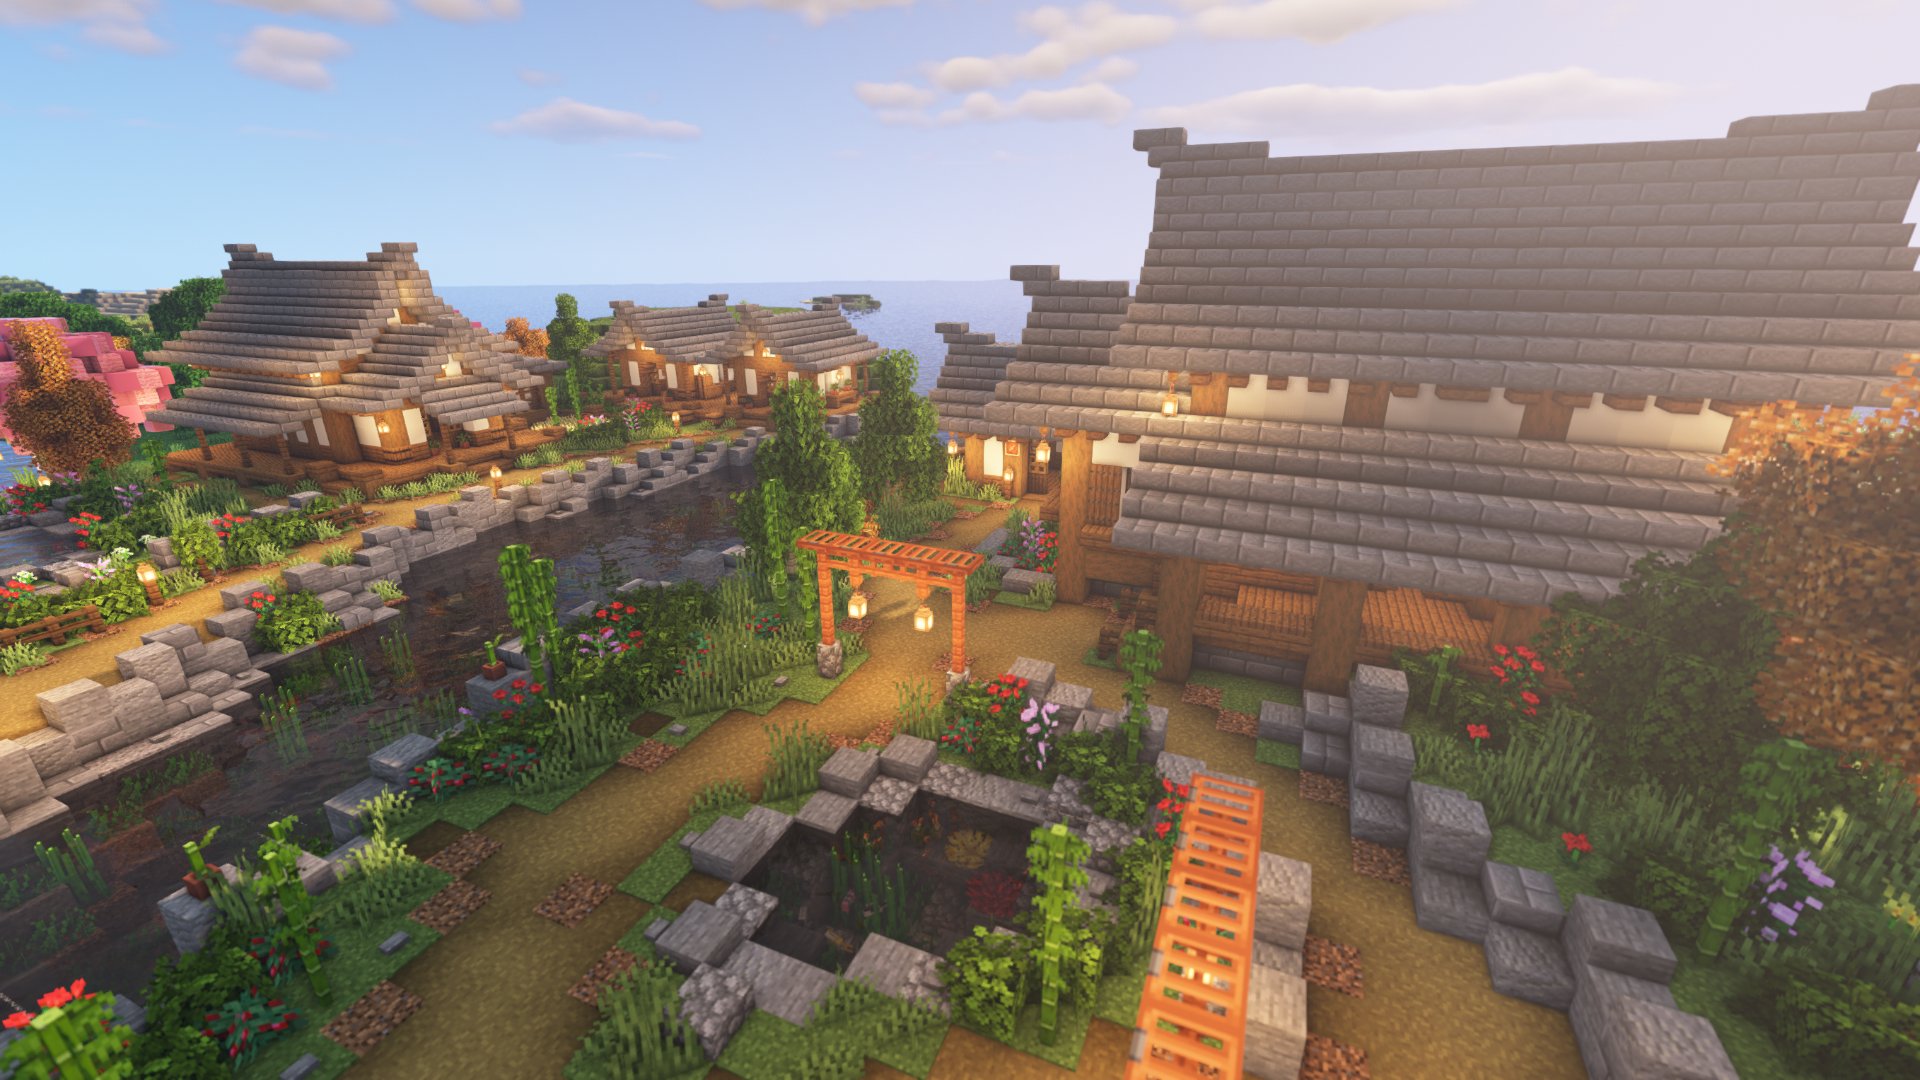 Minecraft Timelapse: Transforming a Plains Biome into a Japanese Village